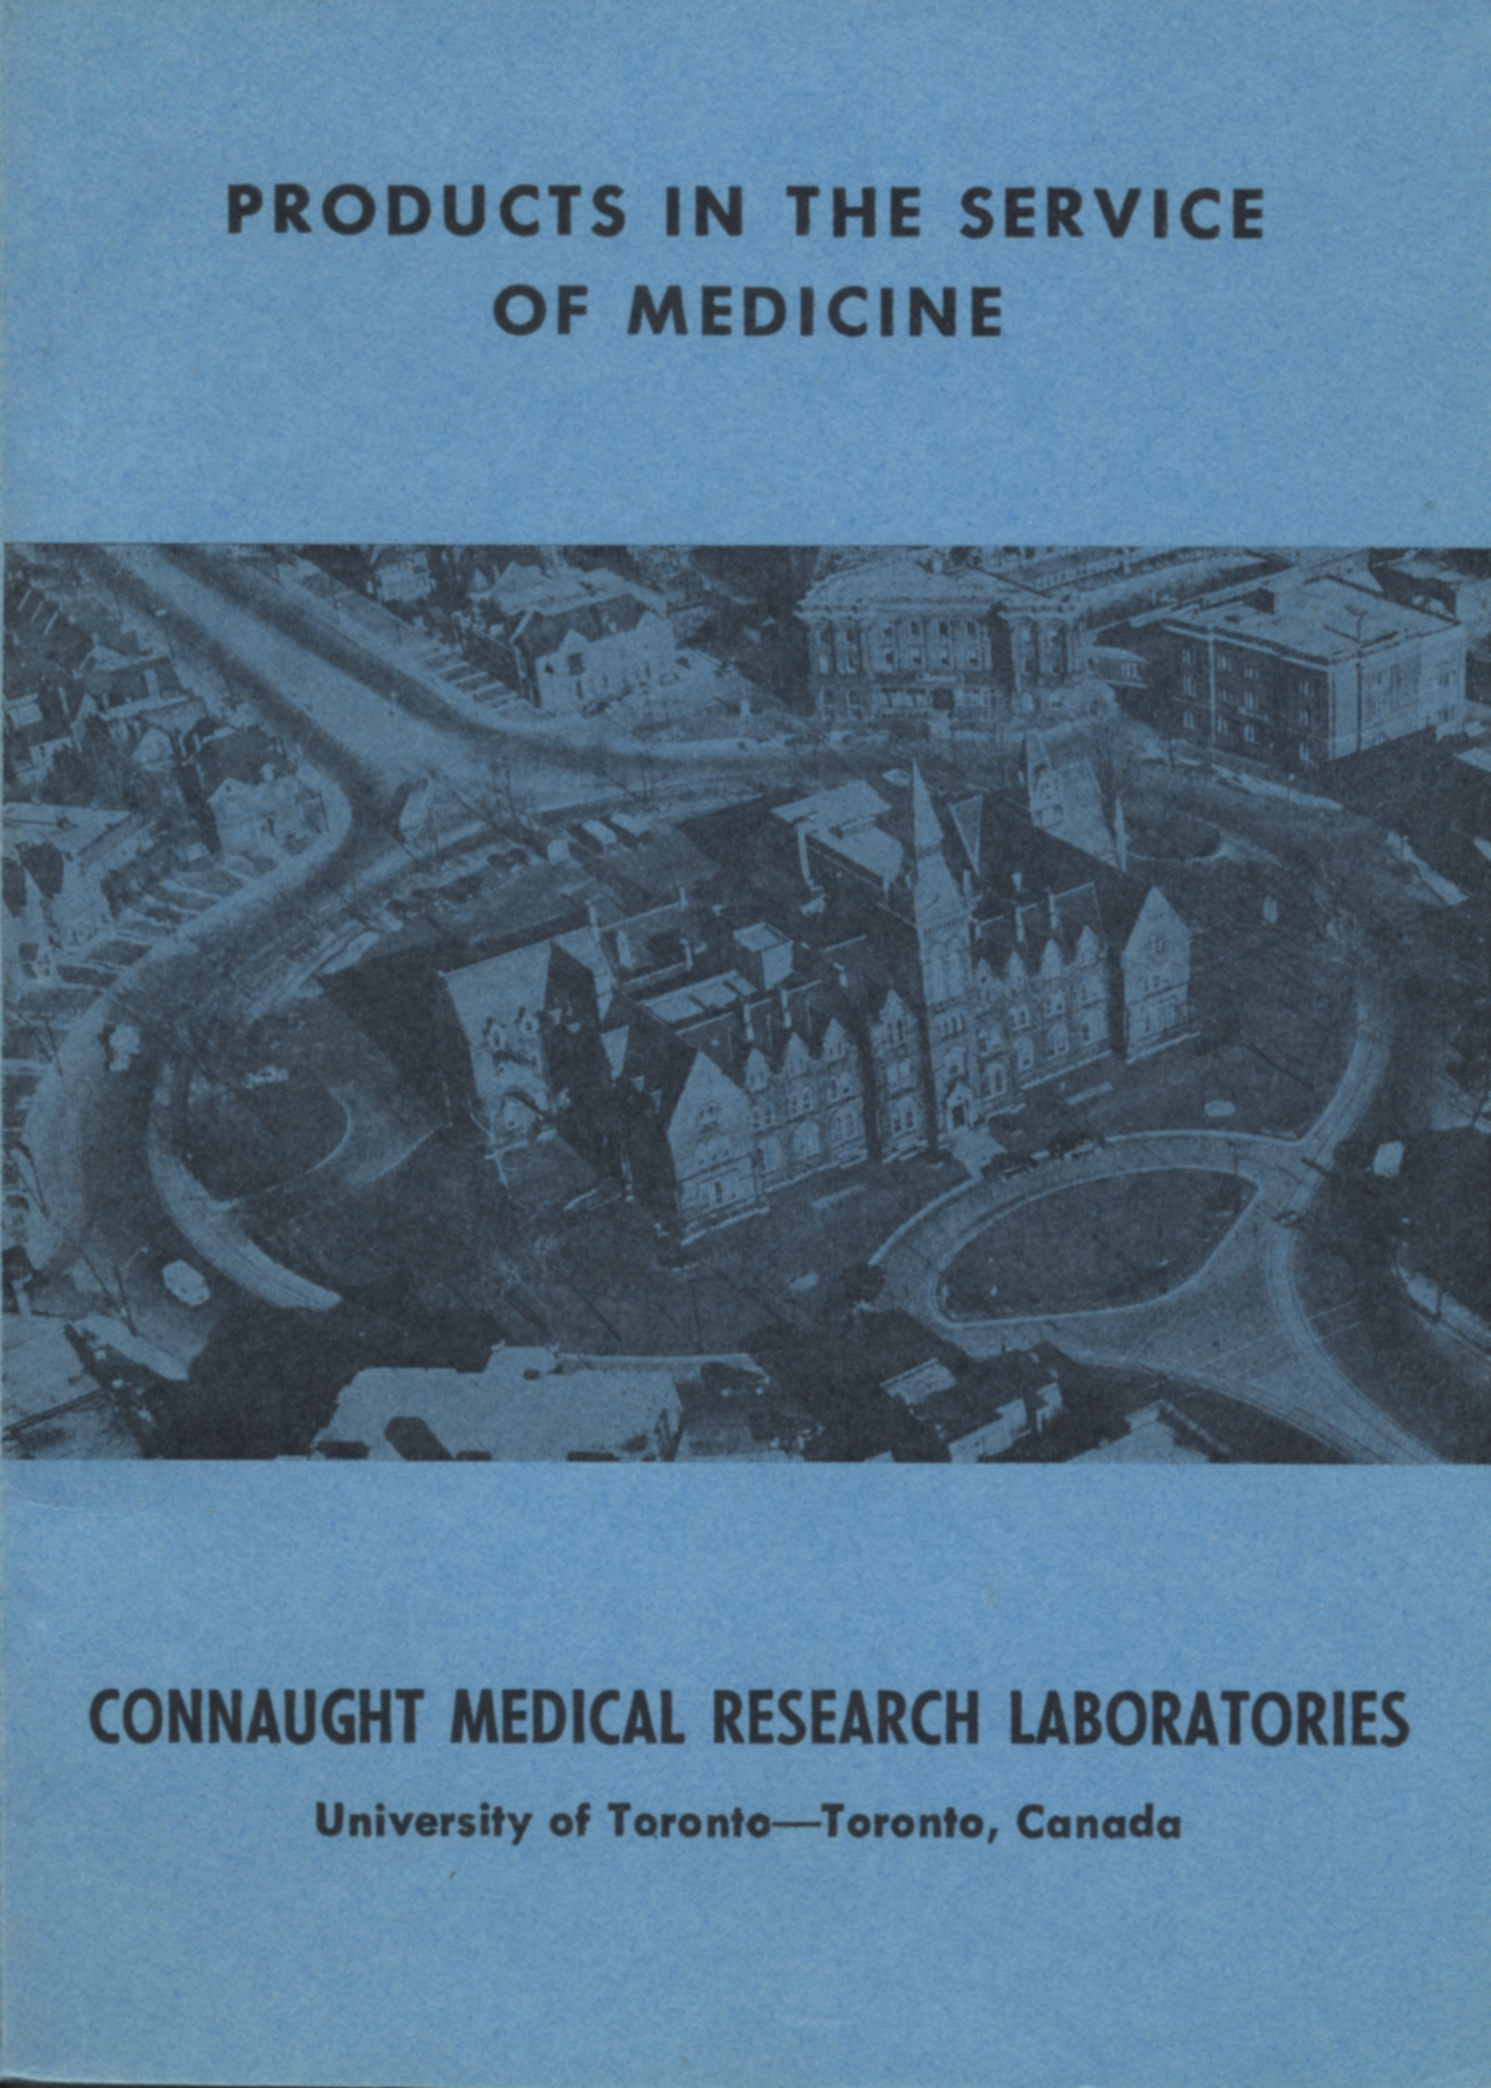 The cover of the Products in the Service of Medicine booklet shows the Spadina Division as the administrative home and main research base of Connaught Medical Research Laboratories in 1959. During the 1960s, Connaught's activities would concentrate at the Labs' Dufferin Division on Steeles Avenue just east of Dufferin Street.